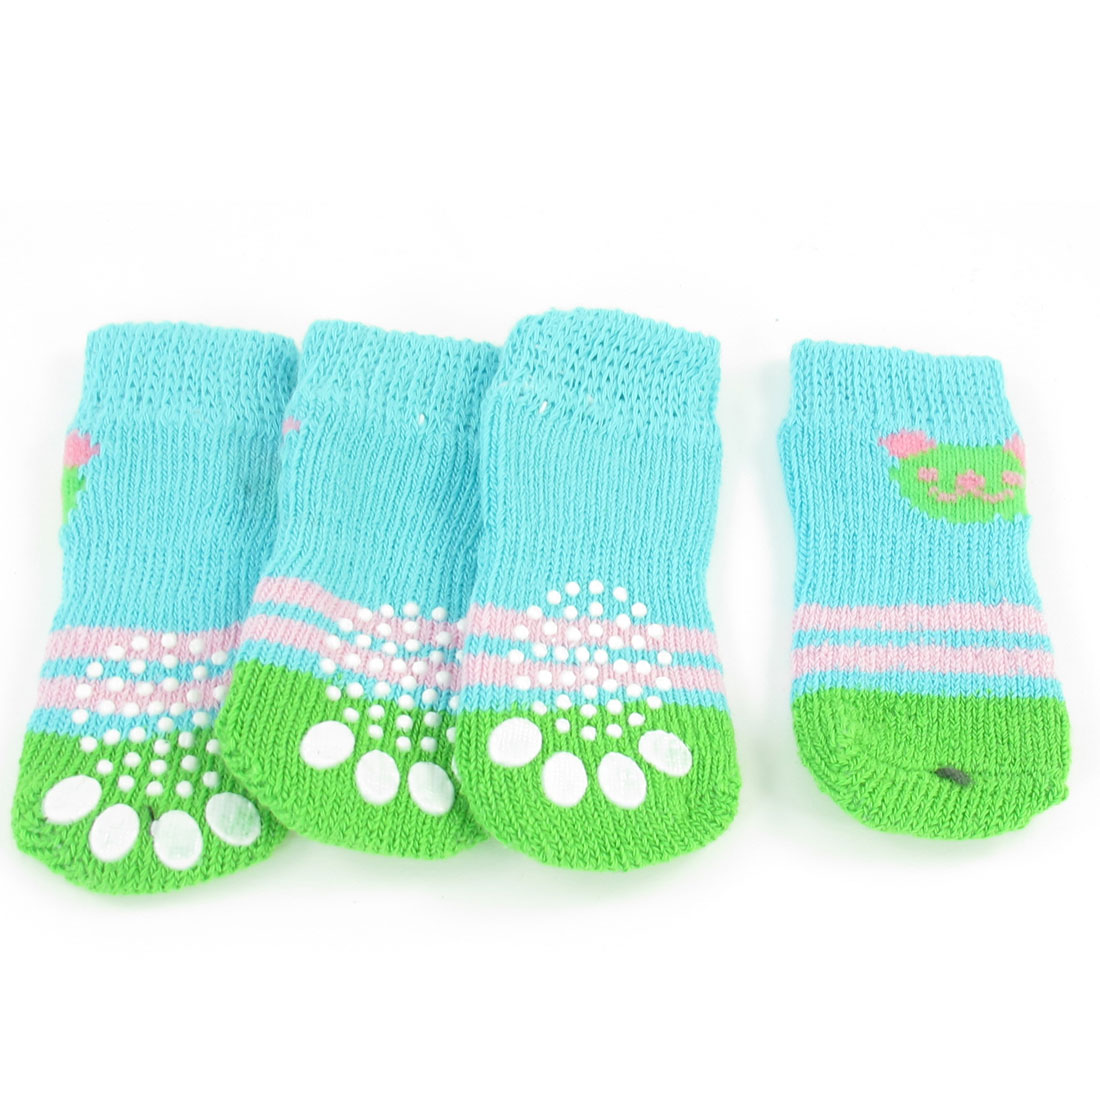 2 Pairs Green Blue Paw Pattern Acrylic knitted Pet Dog Doggie Socks Size M